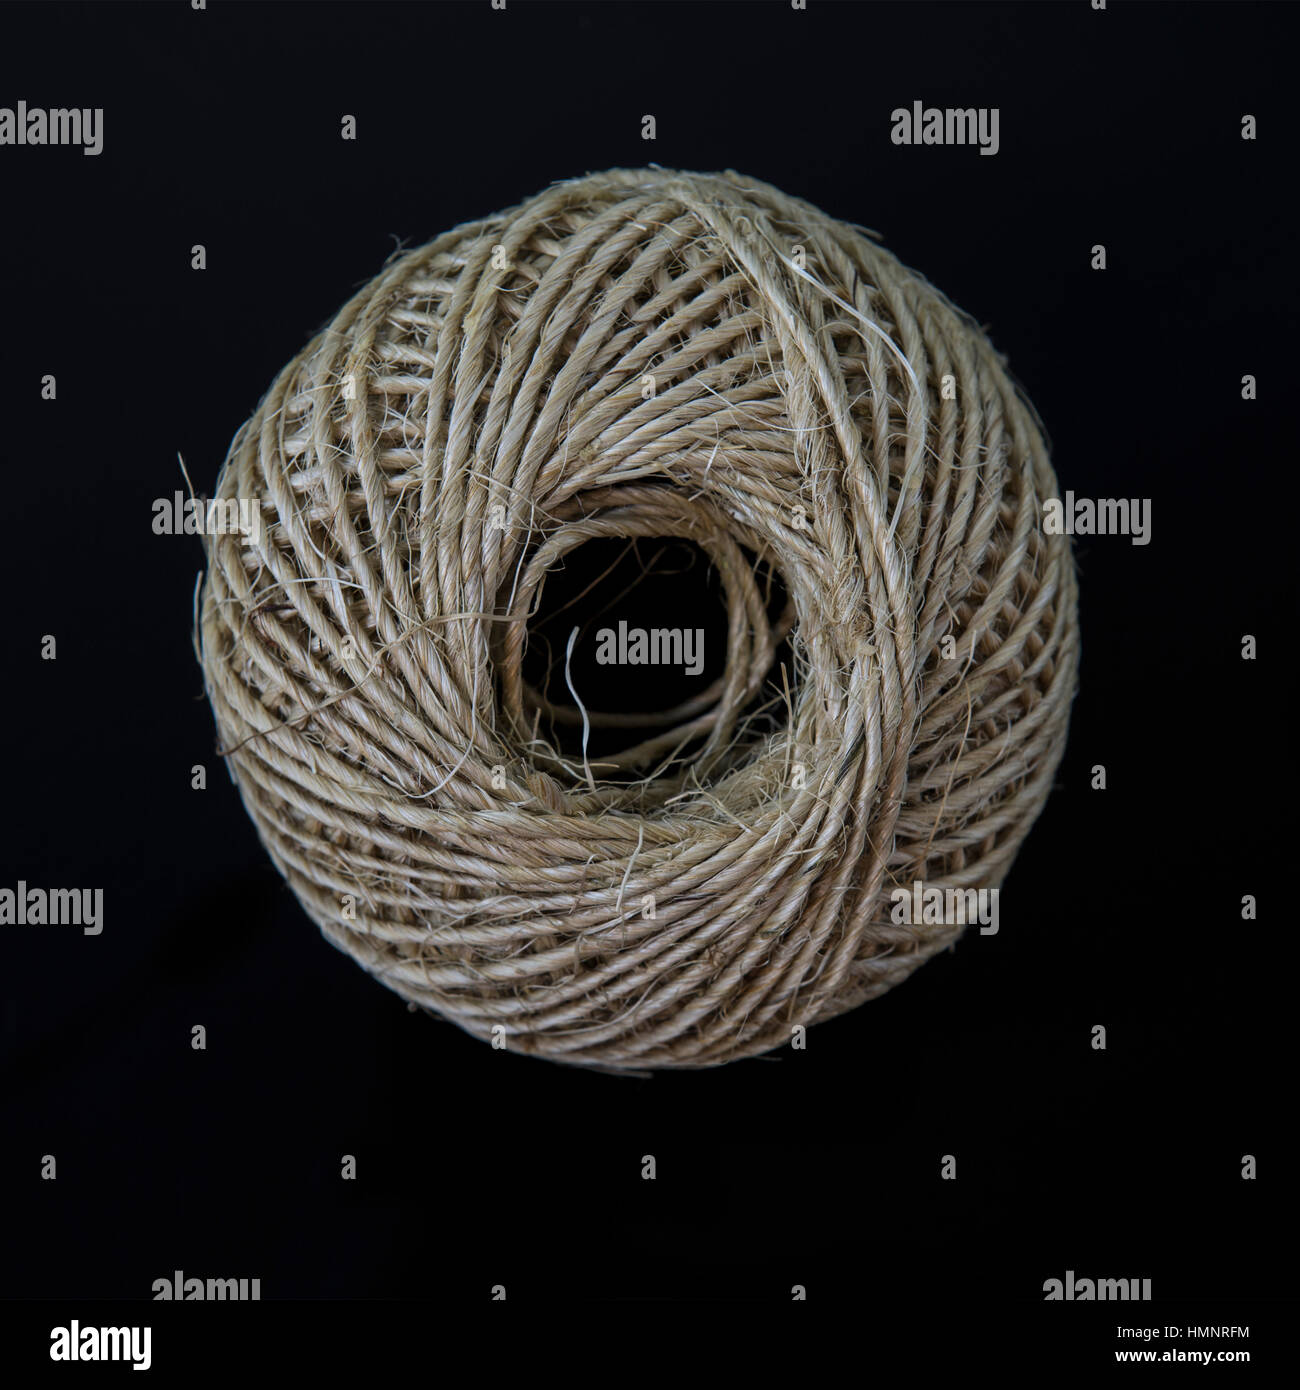 Ball of string on a black background - Stock Image